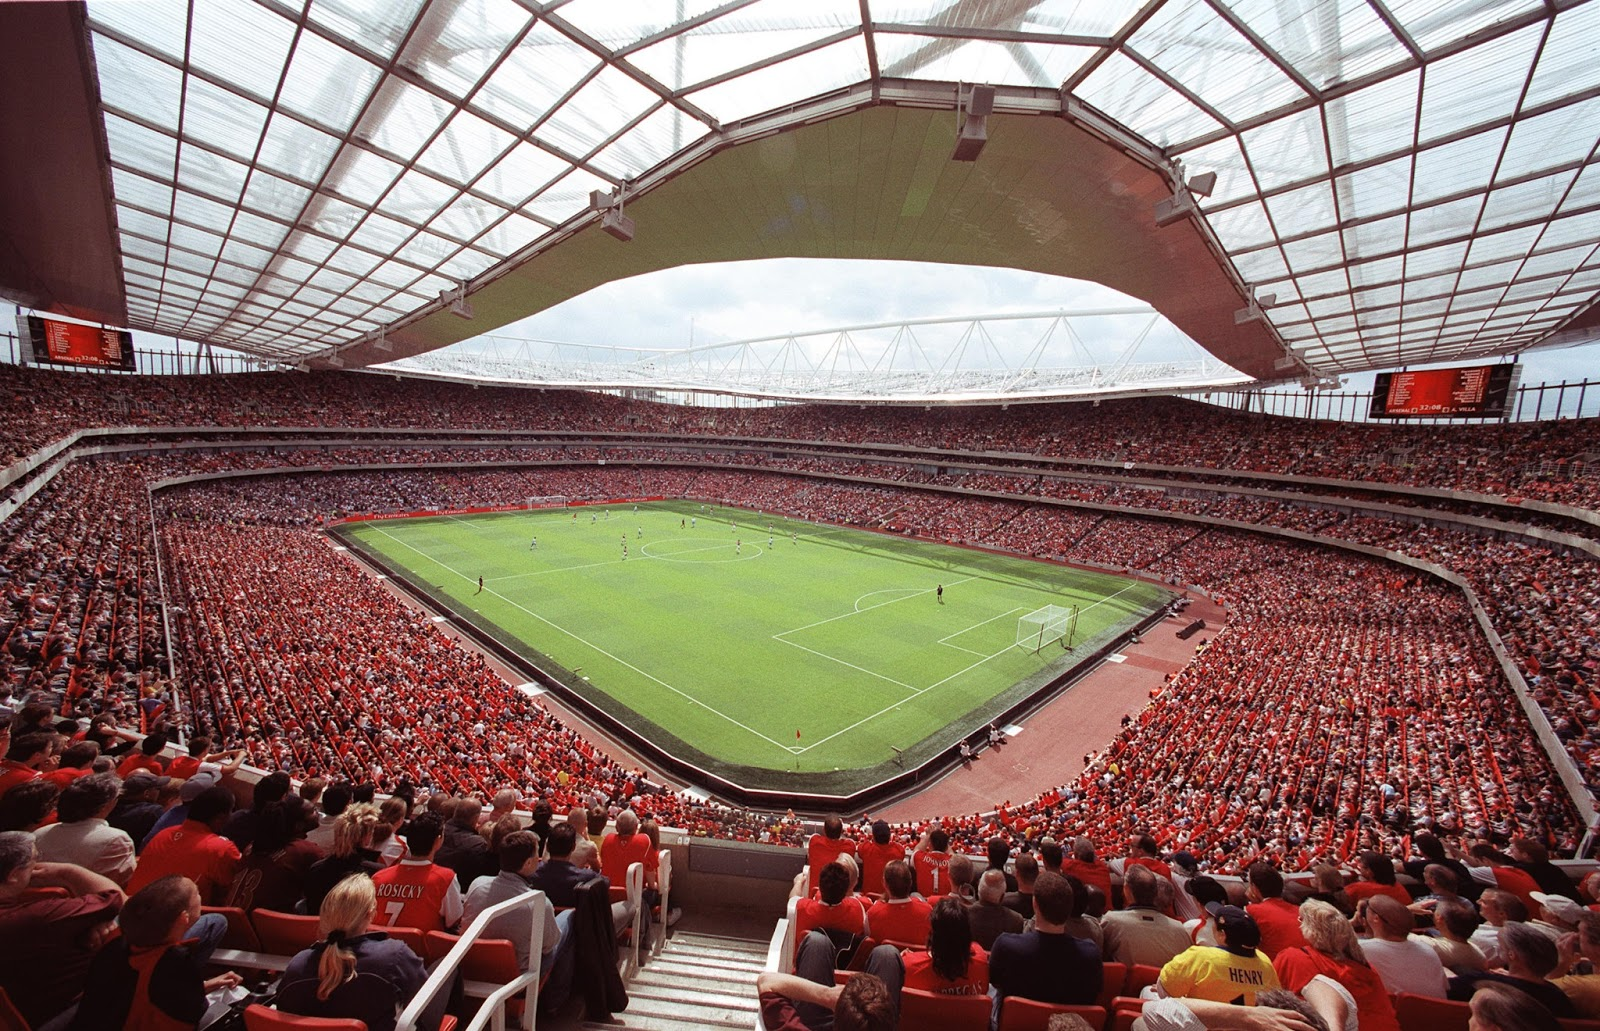 emirates stadium Choose from a range of hotels near the emirates stadium from just £35 premier inn, everything's premier but the price.